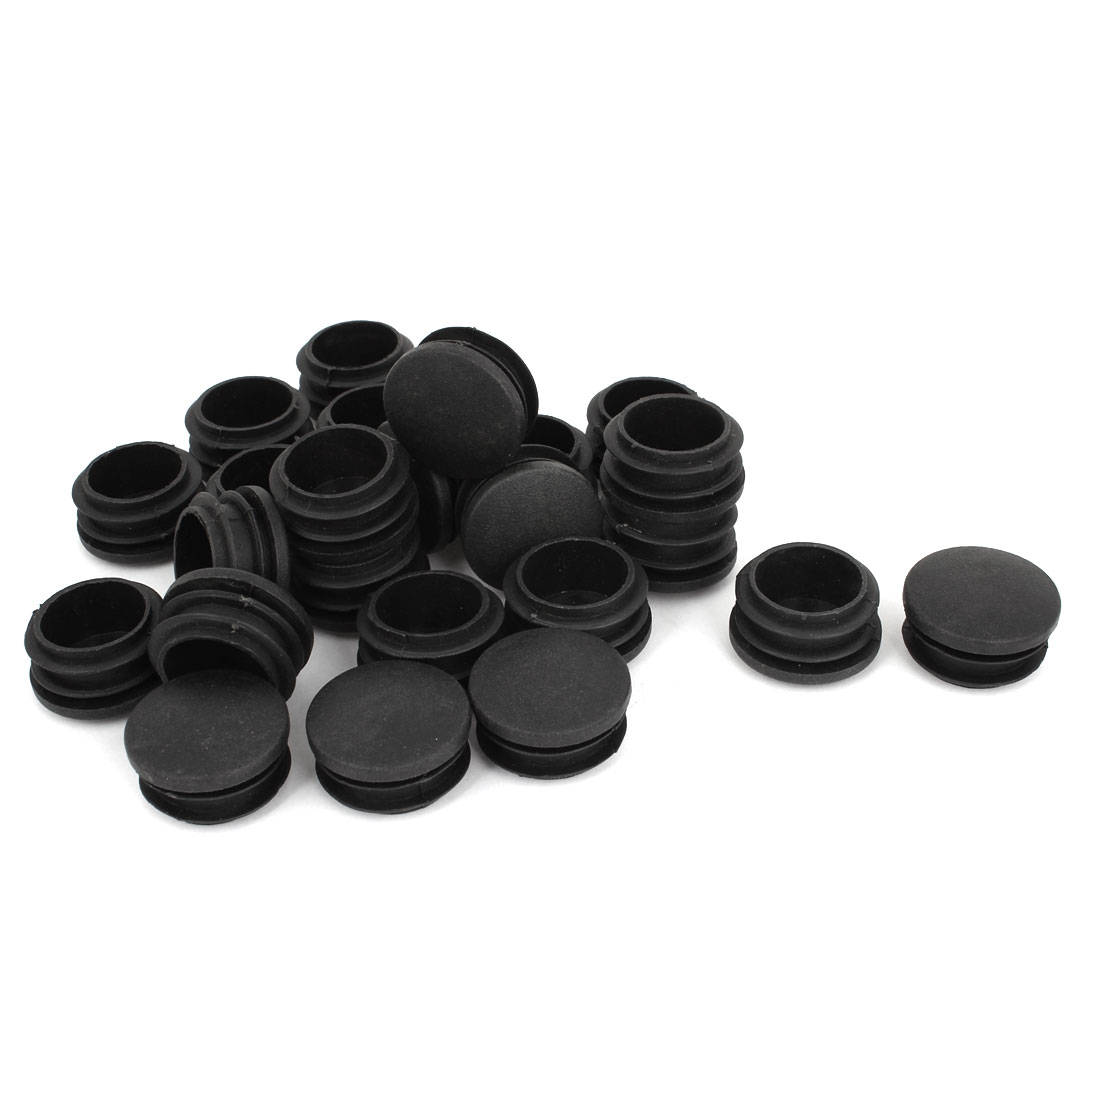 24 Pcs Plastic 30mm Thread Dia Tubing Tube Insert Blanking End Caps